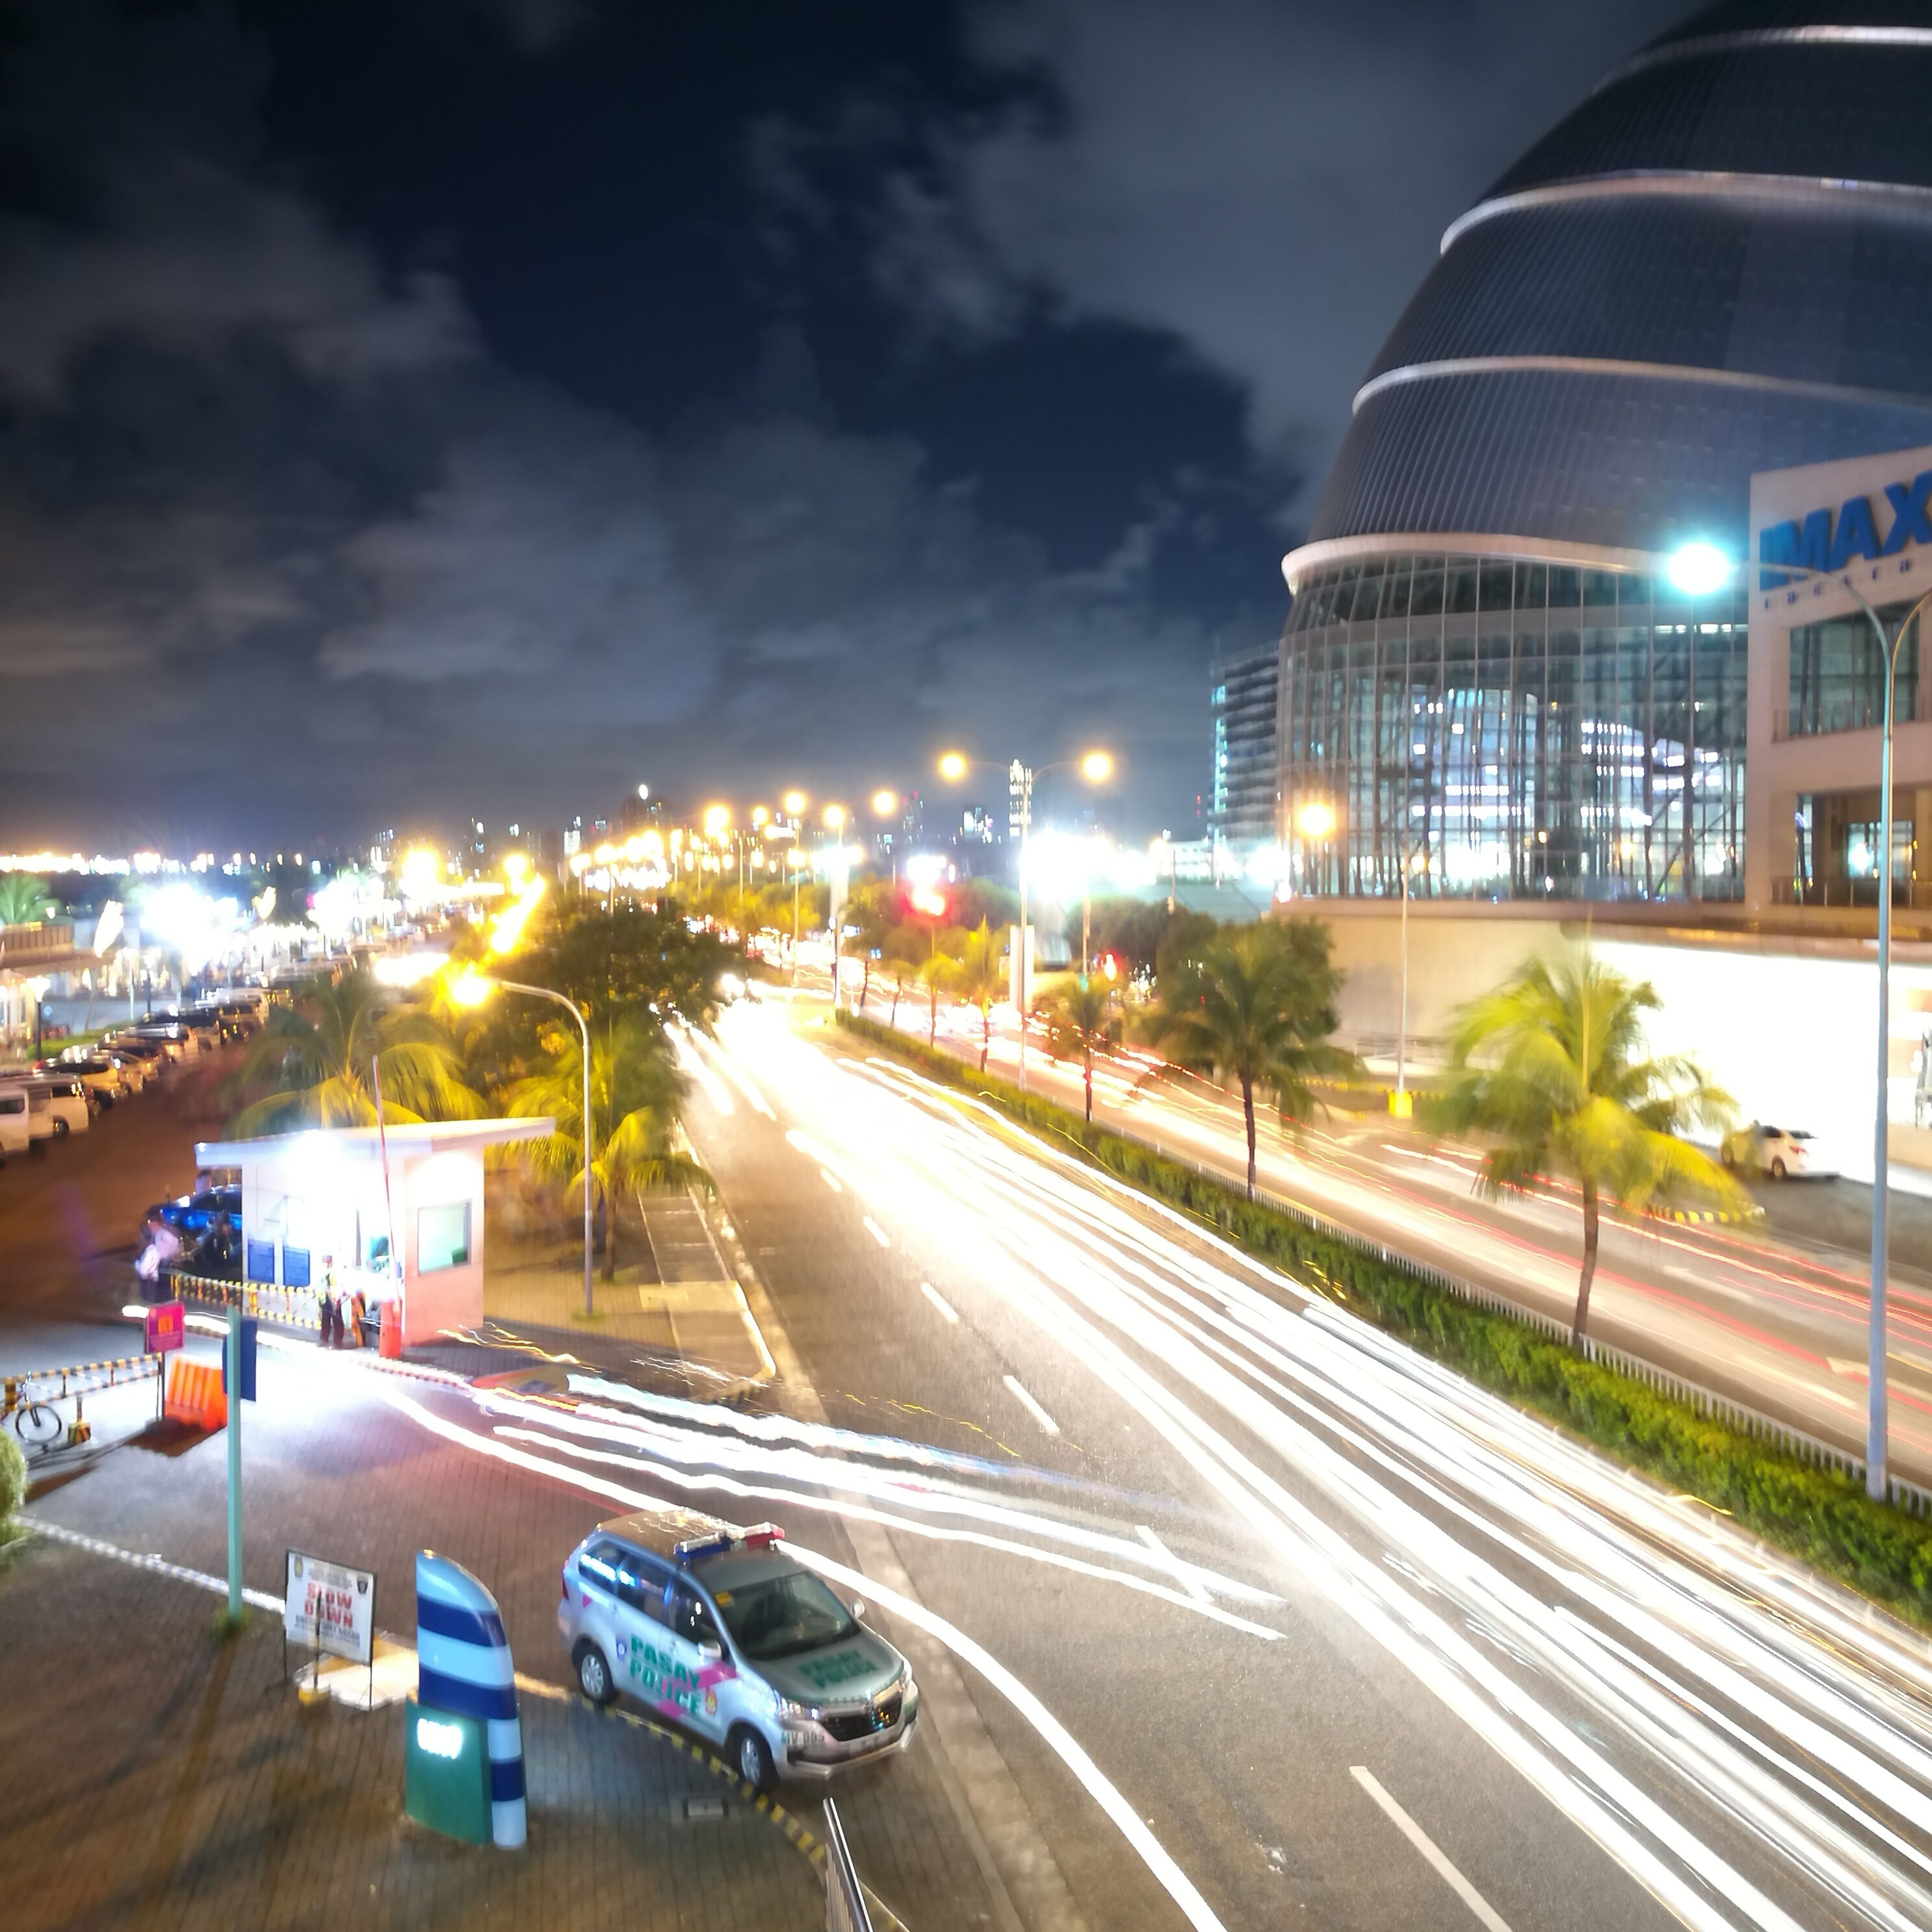 illuminated, night, road, city, architecture, street, building exterior, light trail, built structure, long exposure, transportation, high angle view, motion, outdoors, city life, car, no people, high street, sky, tree, cityscape